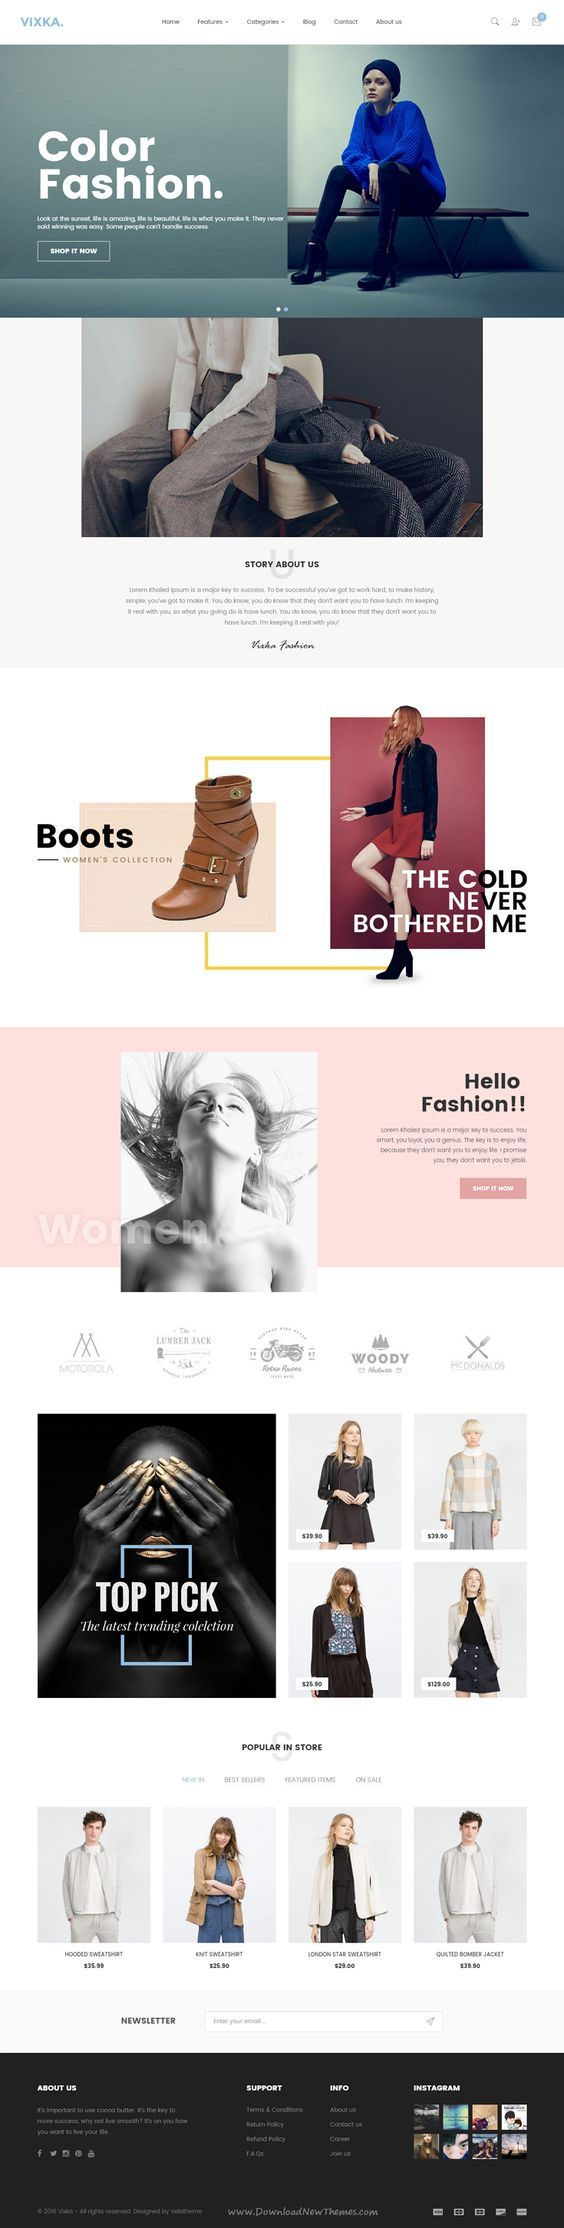 Vixka is a tidy and responsive Shopify theme suitable for any kind of boutique, clothes store, Fashion Shop, makeup products or similar websites that needs a feature rich and beautiful presence online with elegant and flexible design.: